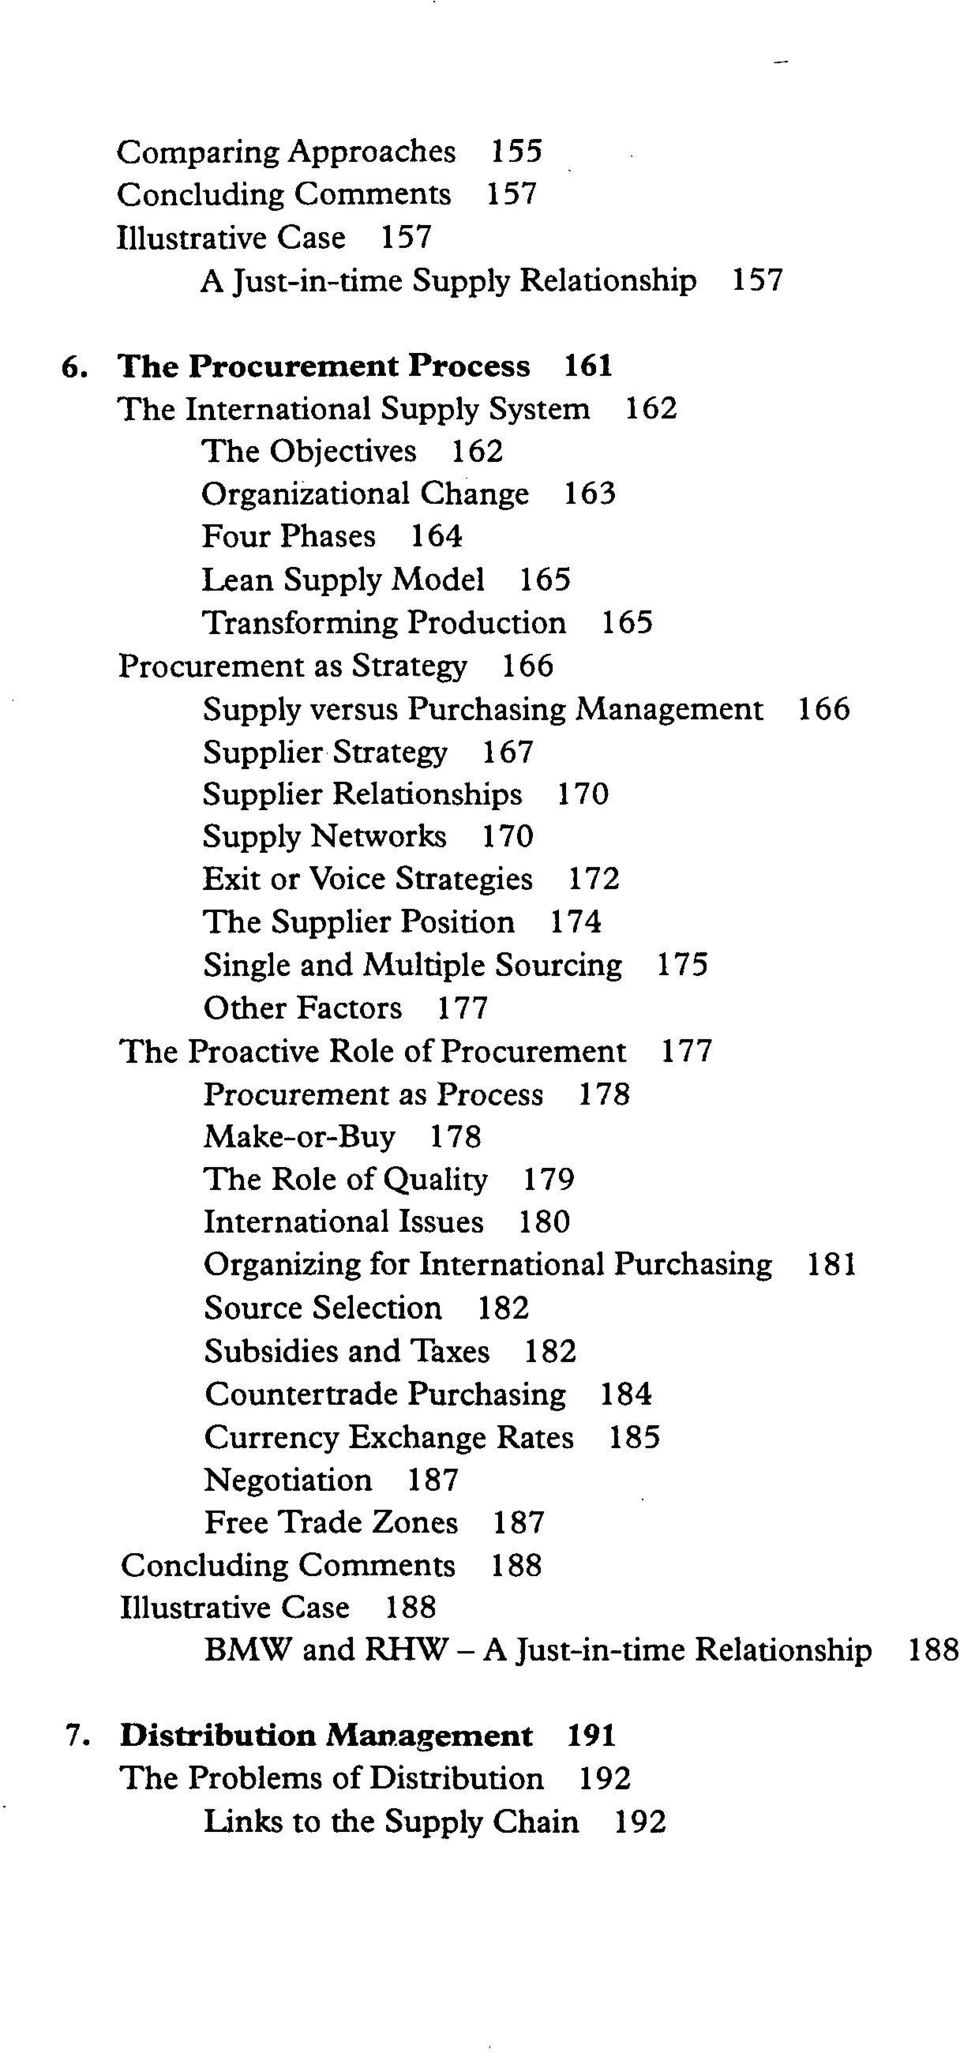 166 Supply versus Purchasing Management 166 Supplier Strategy 167 Supplier Relationships 170 Supply Networks 170 Exit or Voice Strategies 172 The Supplier Position 174 Single and Multiple Sourcing